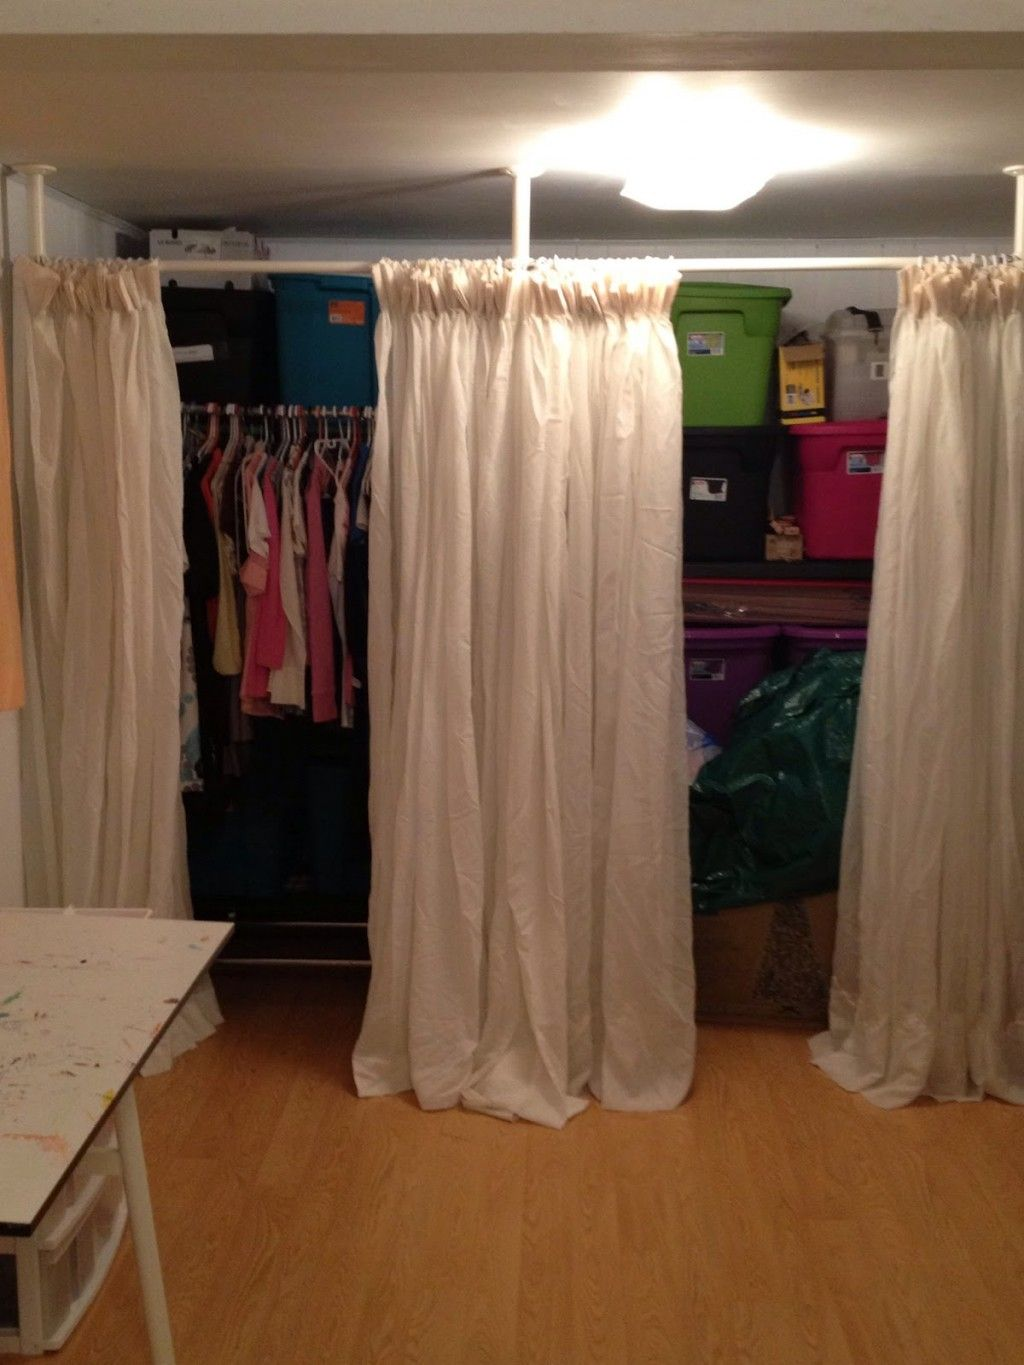 Feminine Curtain Rods For Room Dividers And Curtain Room Dividers